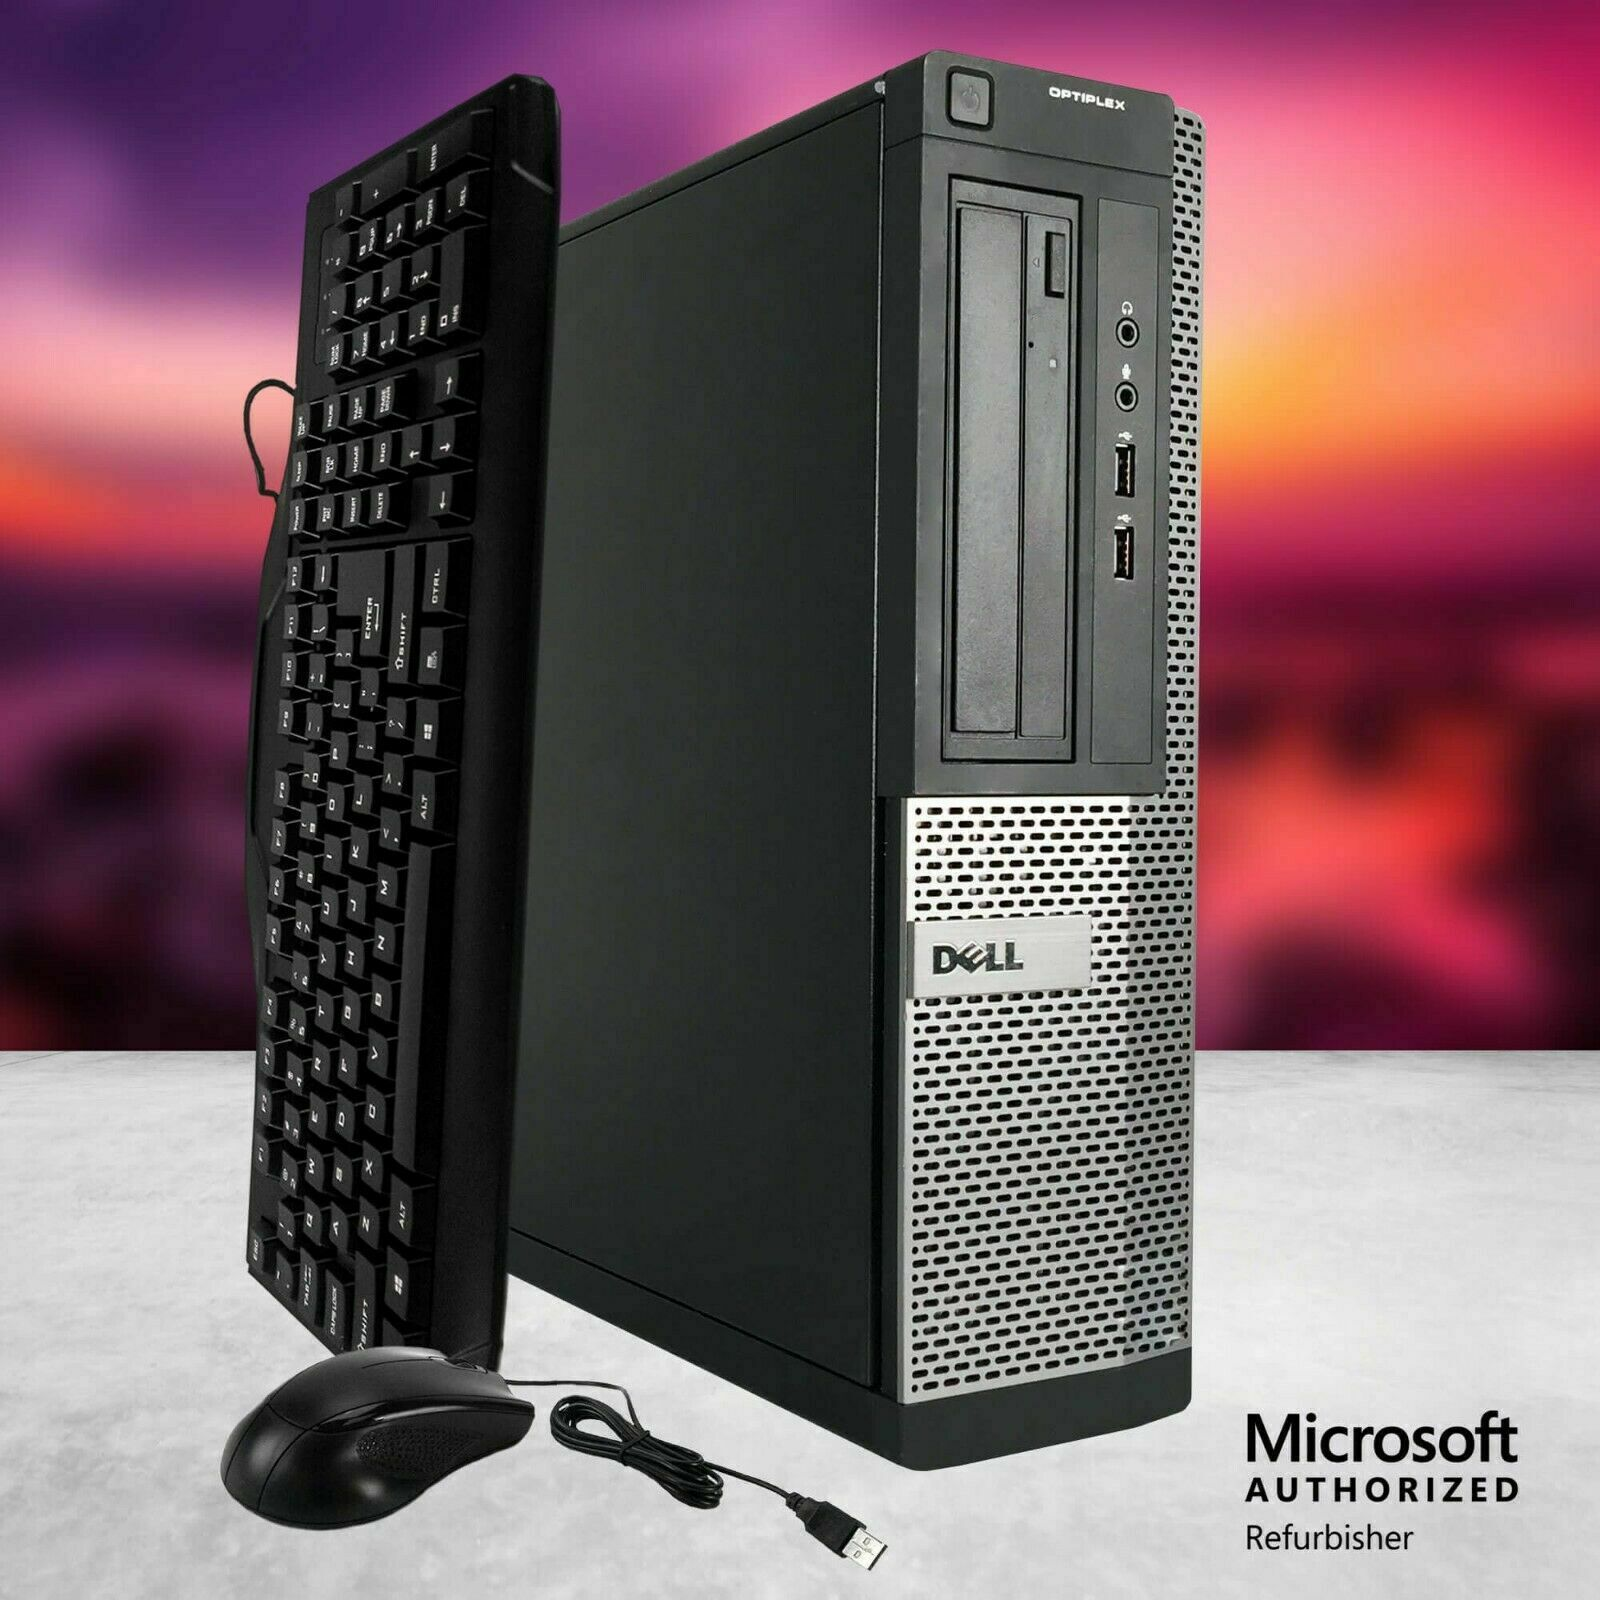 Dell 3010 Quad Core i5 3.10GHz 16GB RAM 1TB Windows 10 Computer Desktop PC HDMI. Buy it now for 234.99